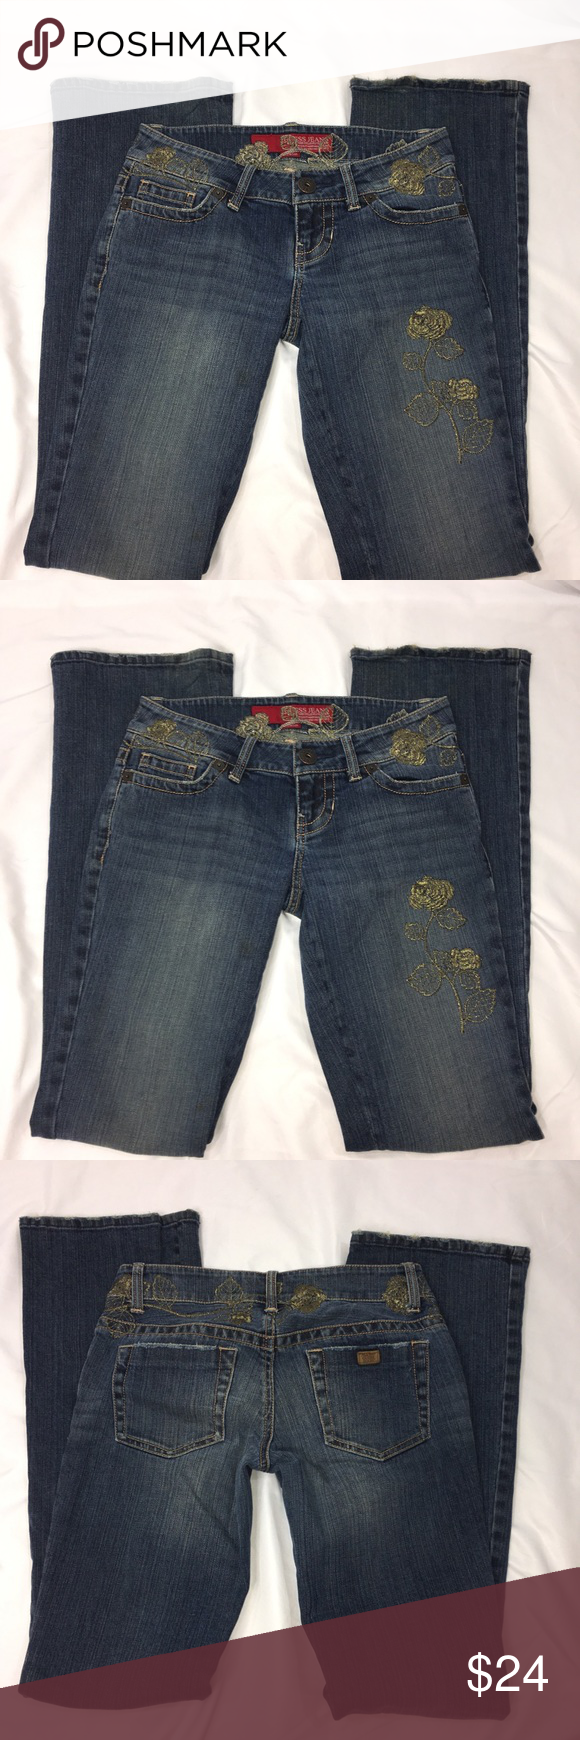 Guess jeans flare gold floral embroider size my posh picks